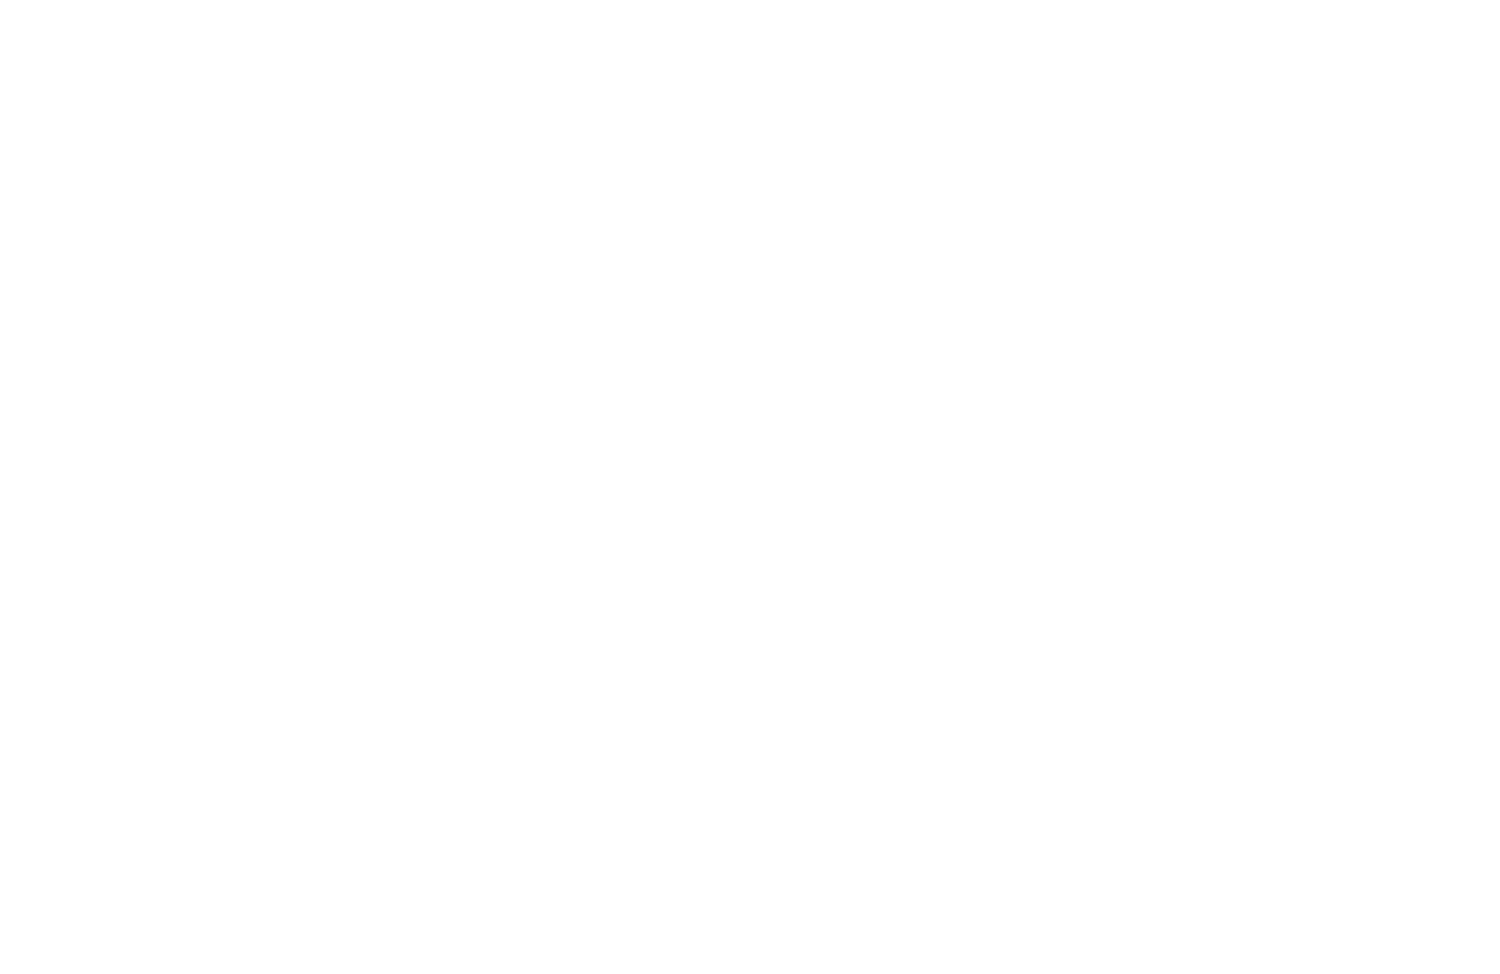 GTS Events